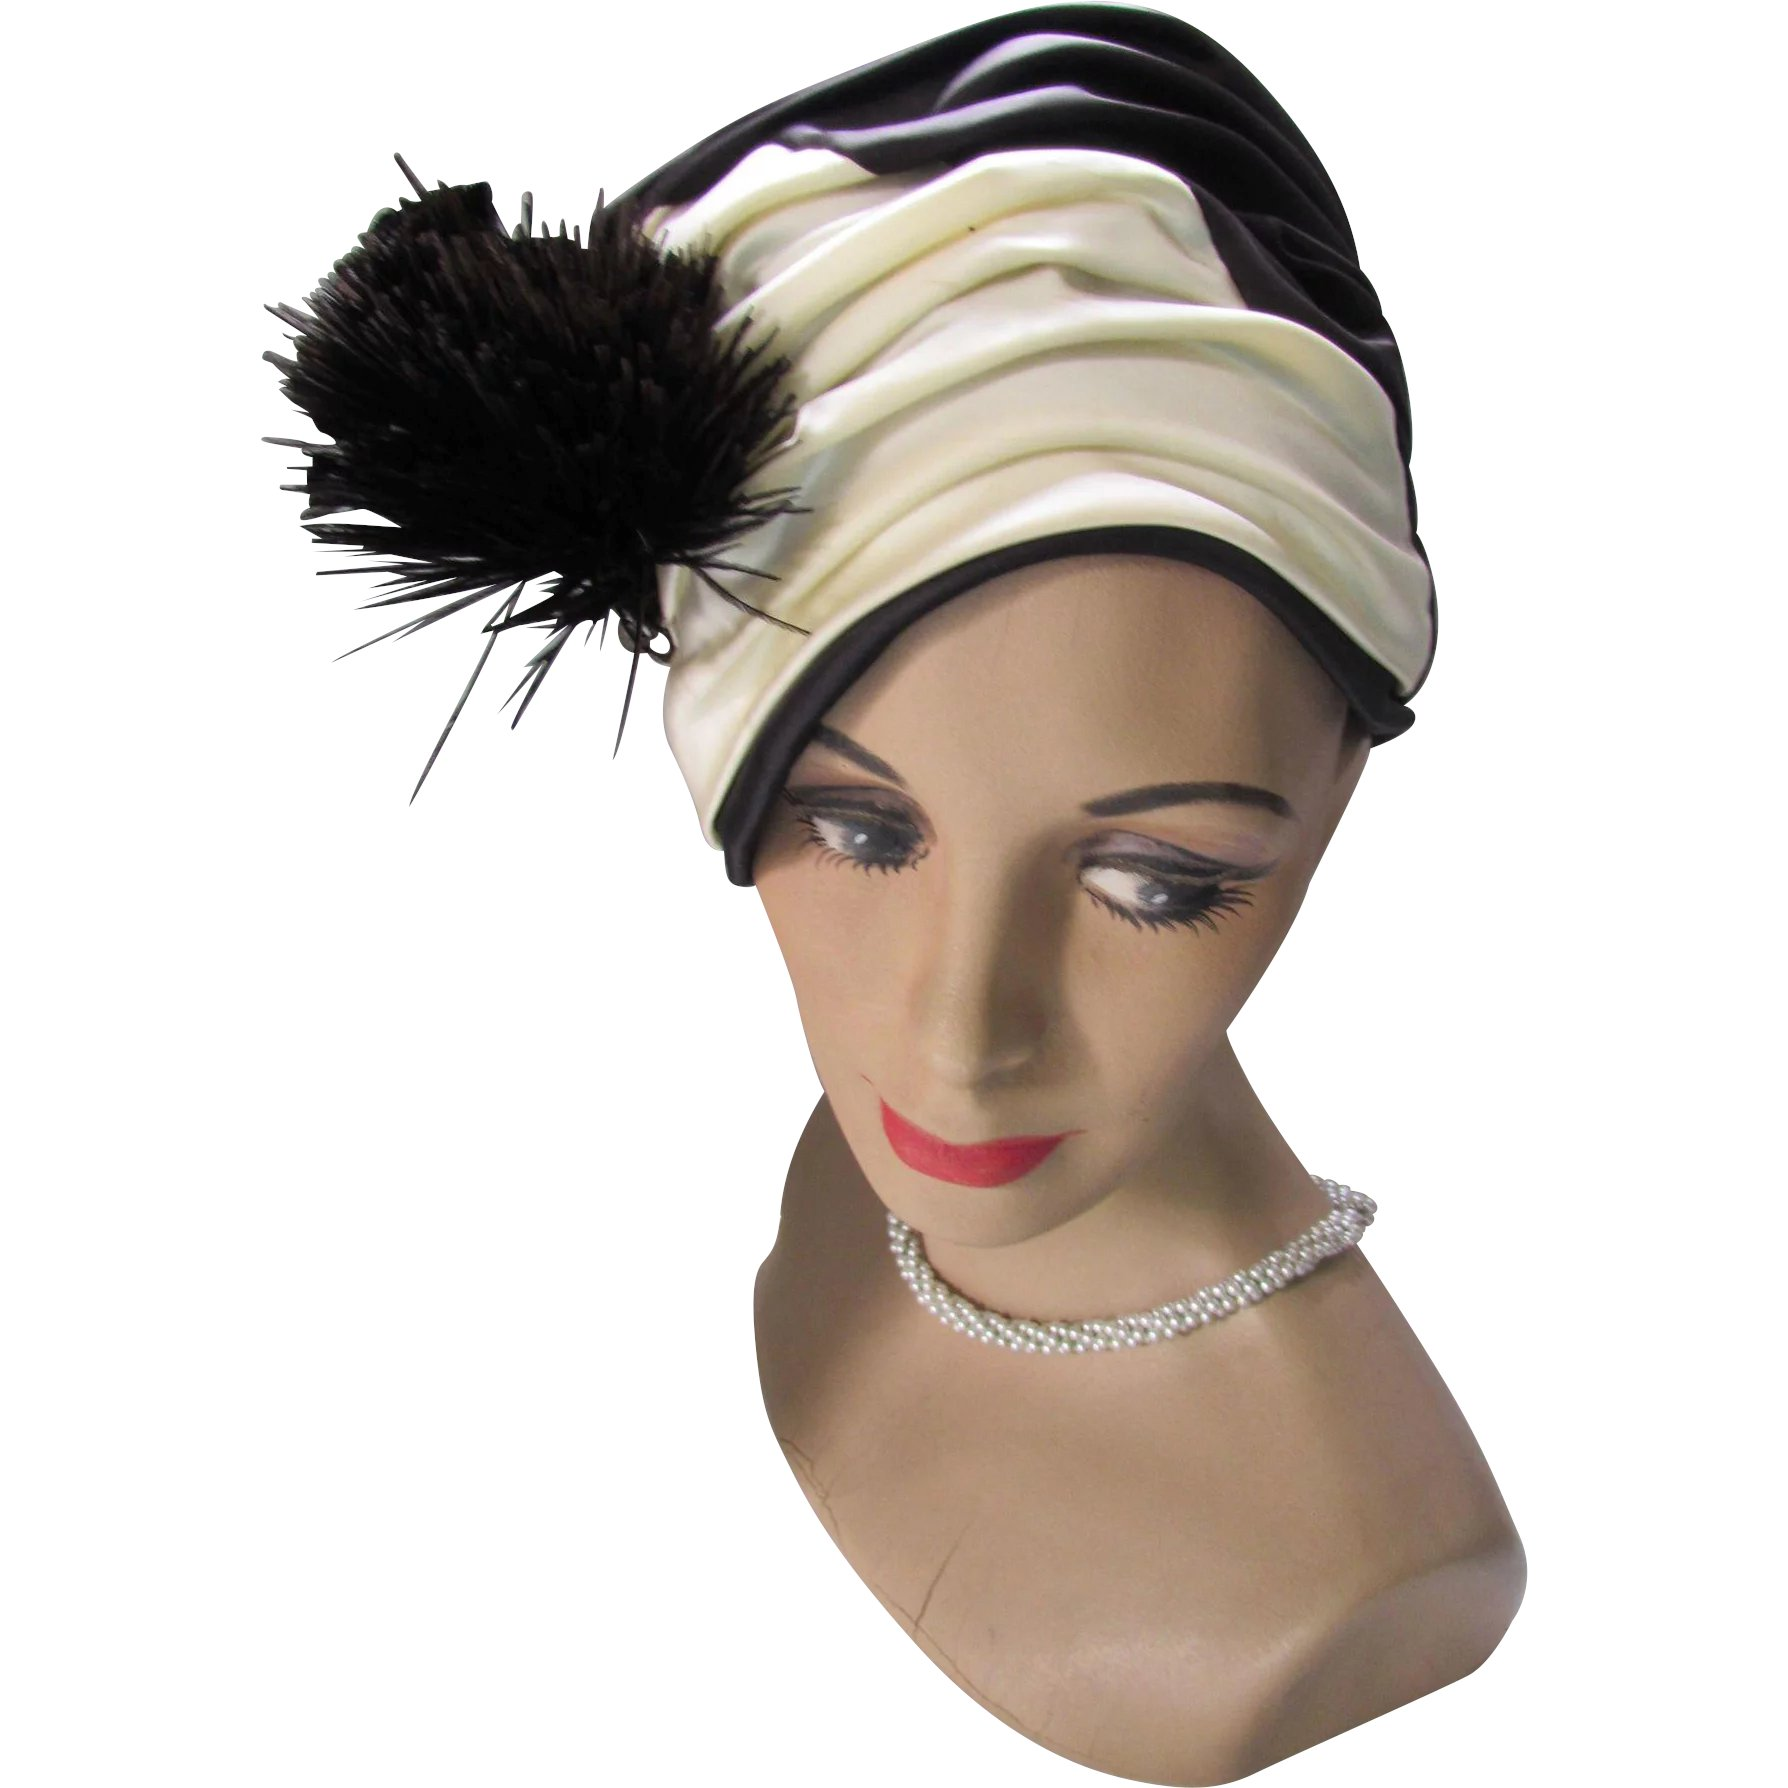 4e398749c1a88 Dramatic Turban Style Hat in Black and Cream Satin with Fan Feather    Maude s Vintage Ware